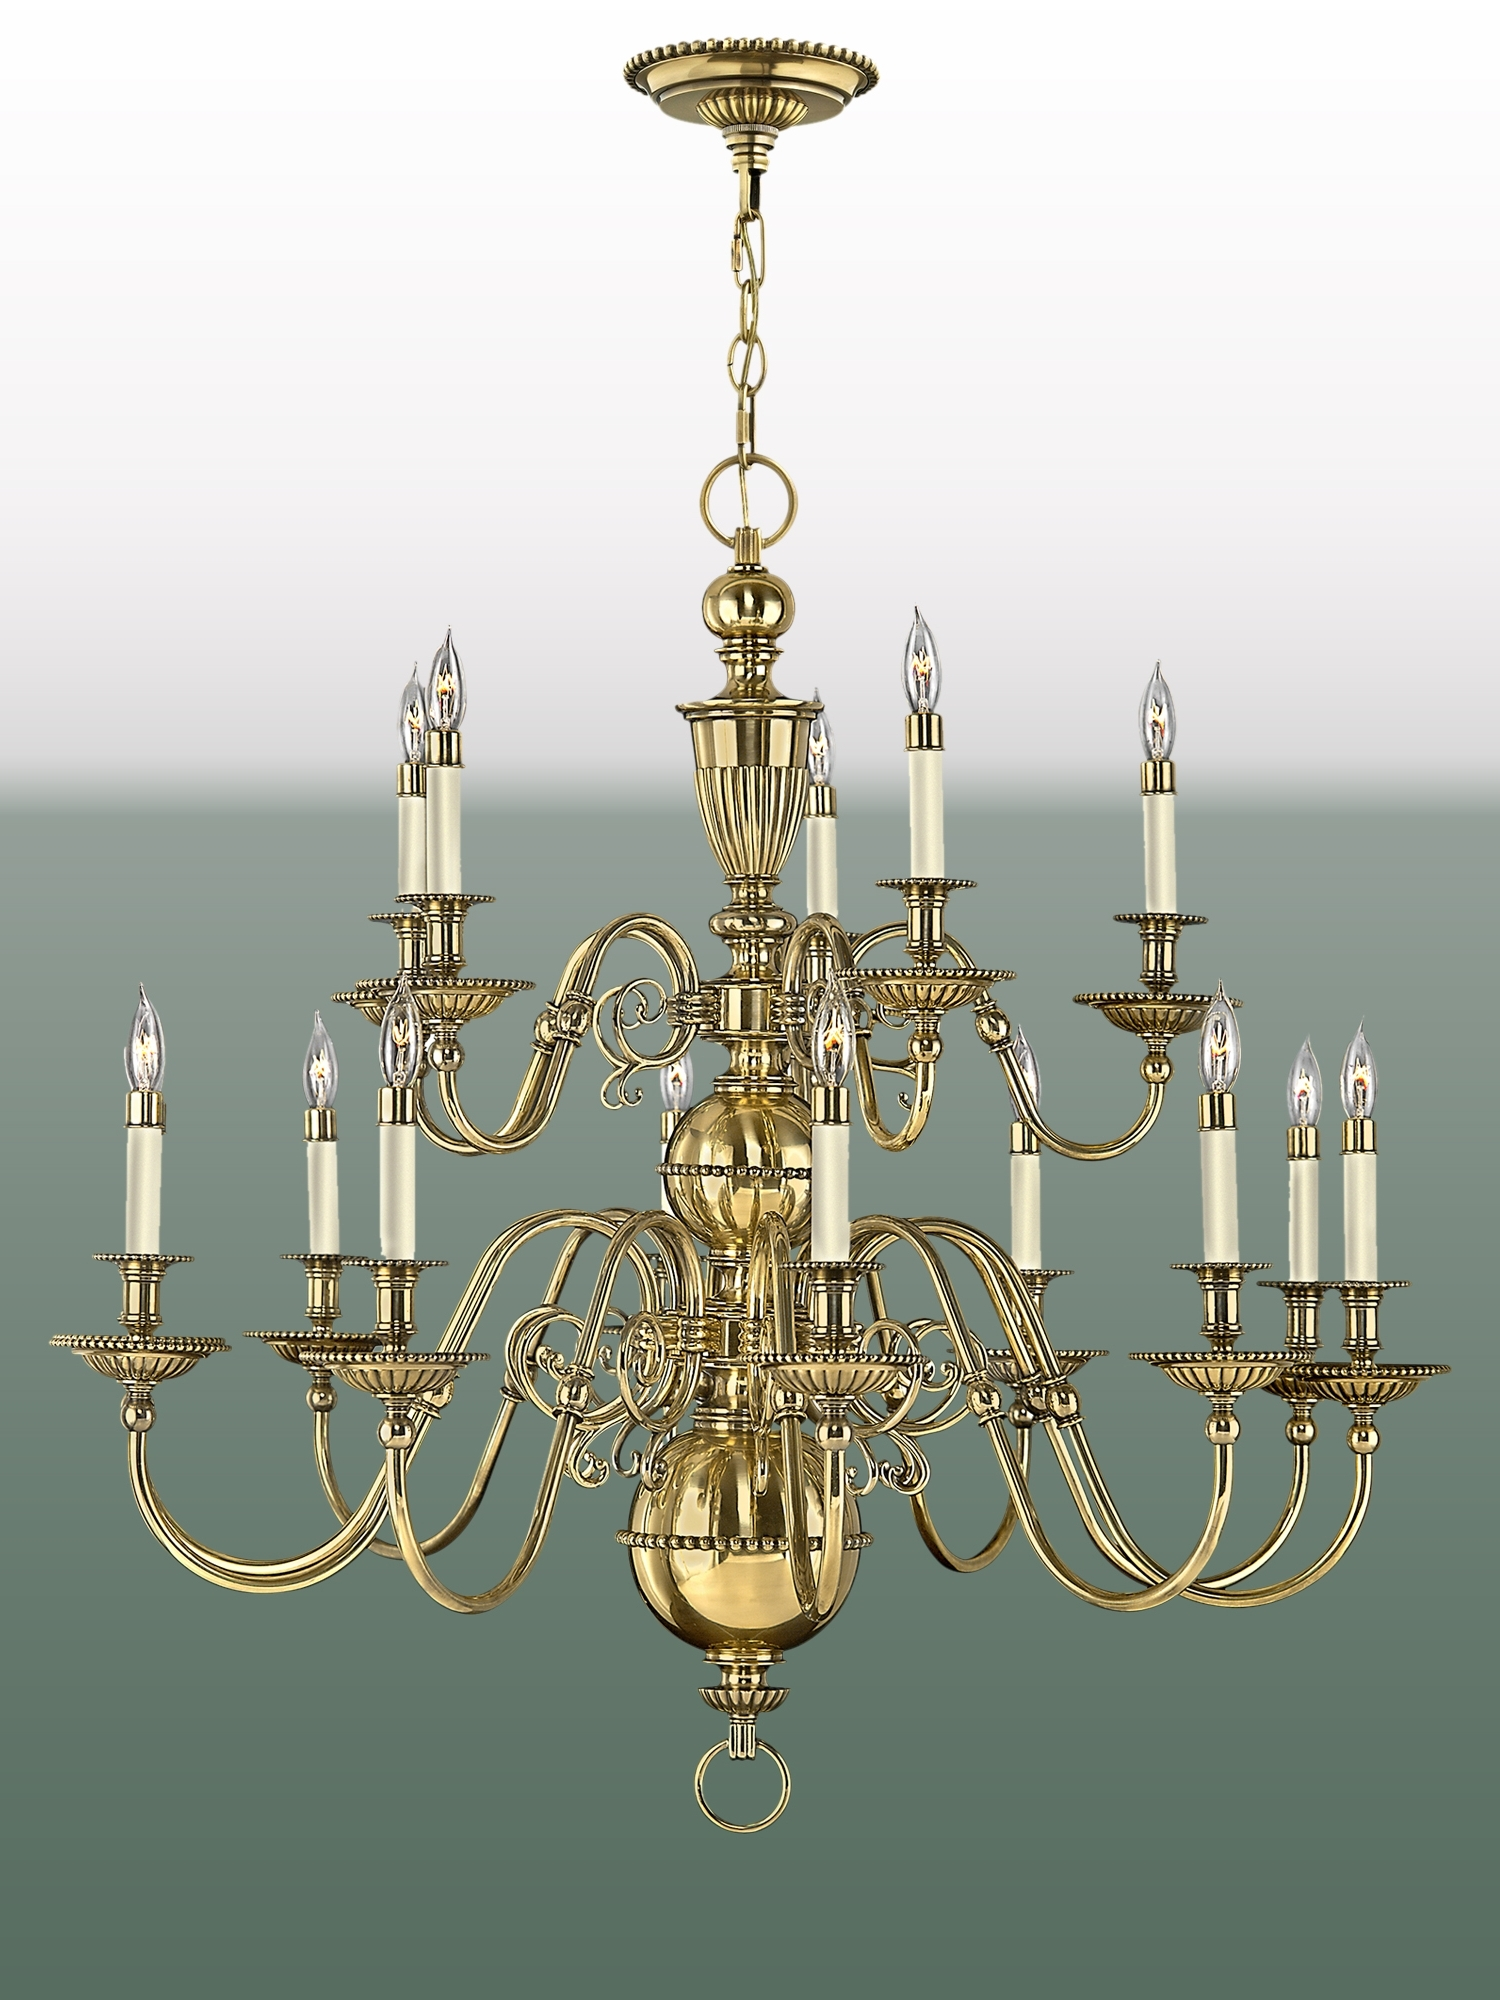 The Chandelier & Mirror Company Pertaining To Brass Chandeliers (View 4 of 20)